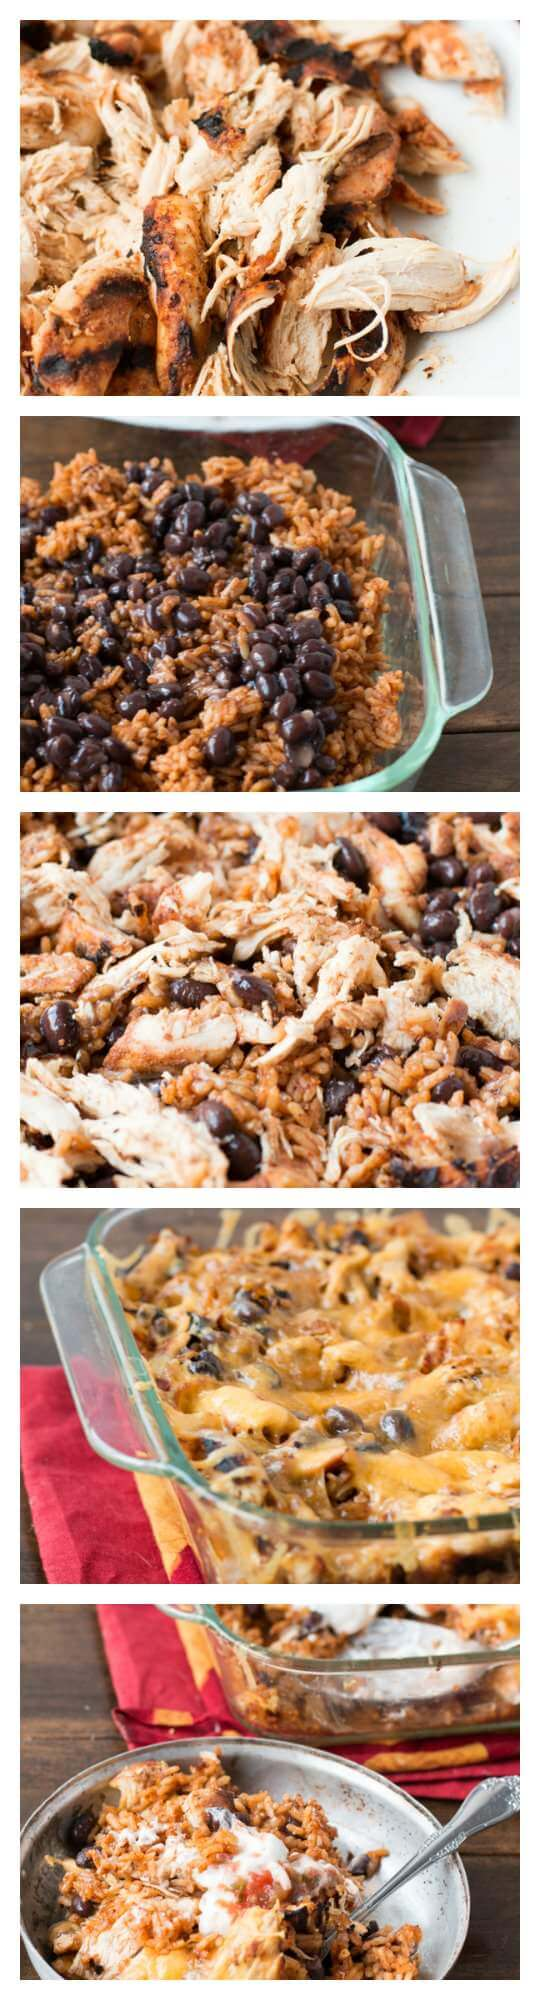 Mexican chicken and rice casserole for dinner tonight! ohsweetbasil.com spanish rice, black beans, shredded chicken, salsa, sour cream, cheese